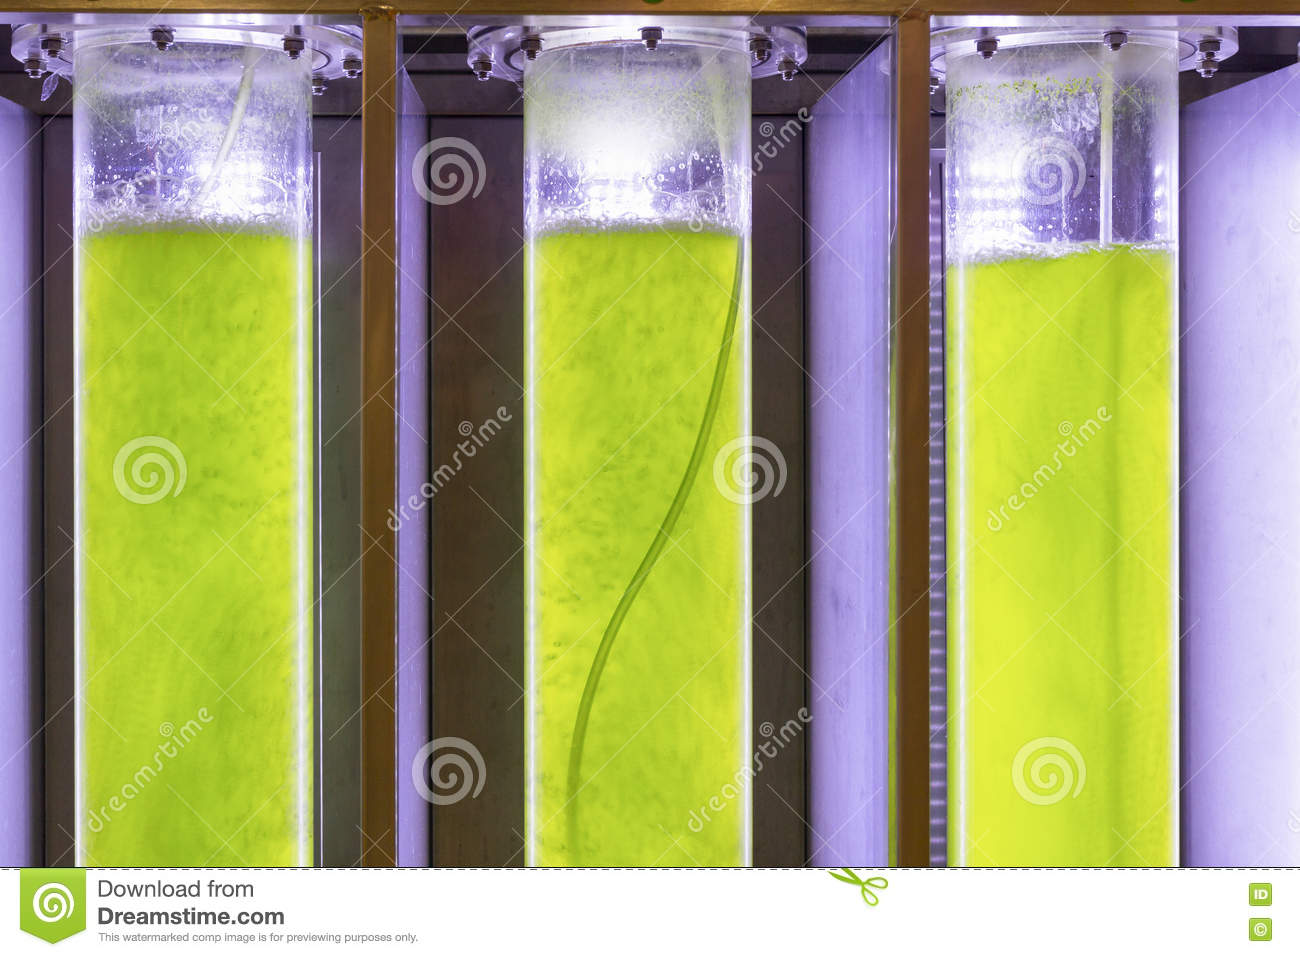 algae biofuel essay Essay on plausibility of algae biofuel comparable to current liquid fuels algae-based biofuels are a leading contender in the race for viable alternatives to traditional petroleum fuels.